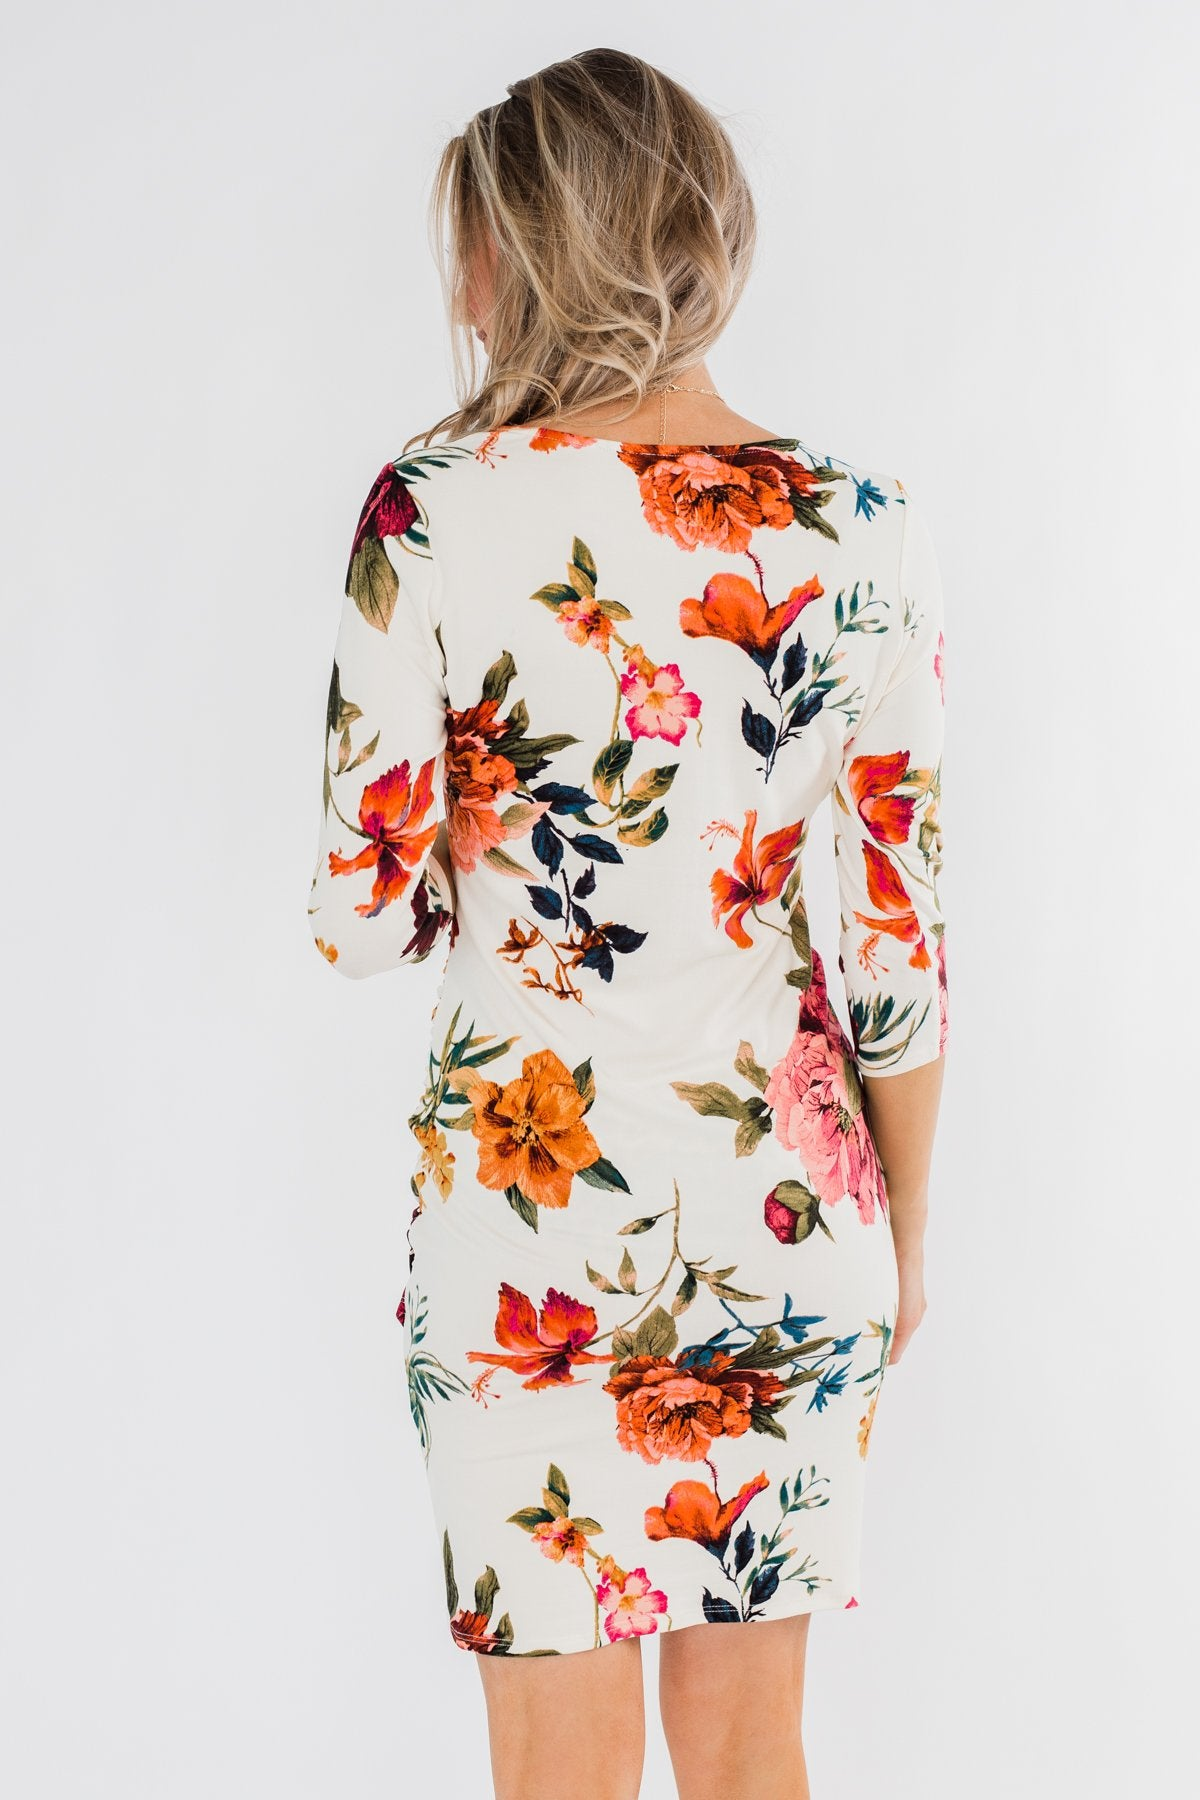 Captivating In Floral Dress- Cream